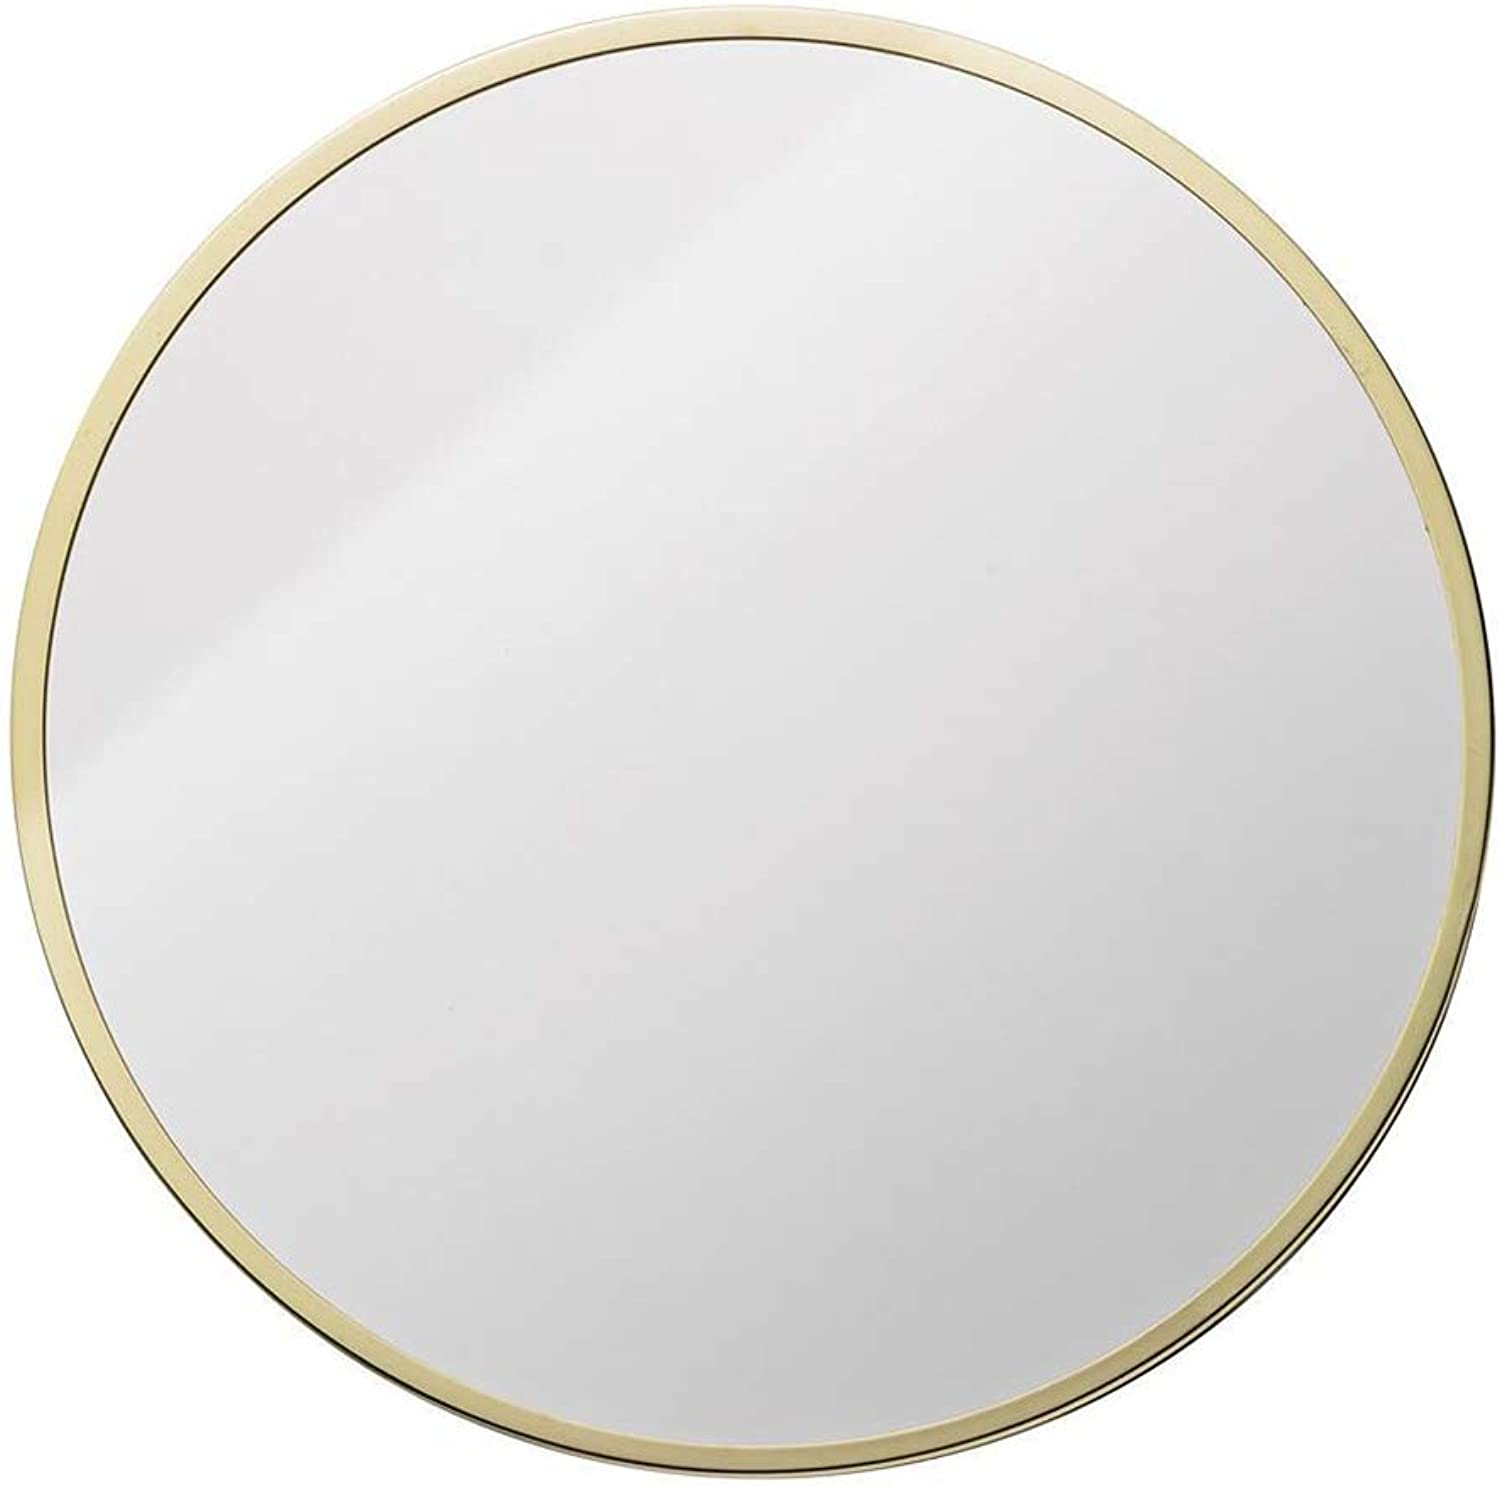 Mirror - Round Wall Mounted Bathroom Mirror, Home Metal Frame Mirror, Nordic Minimalist Style (color   gold, Size   50cm)